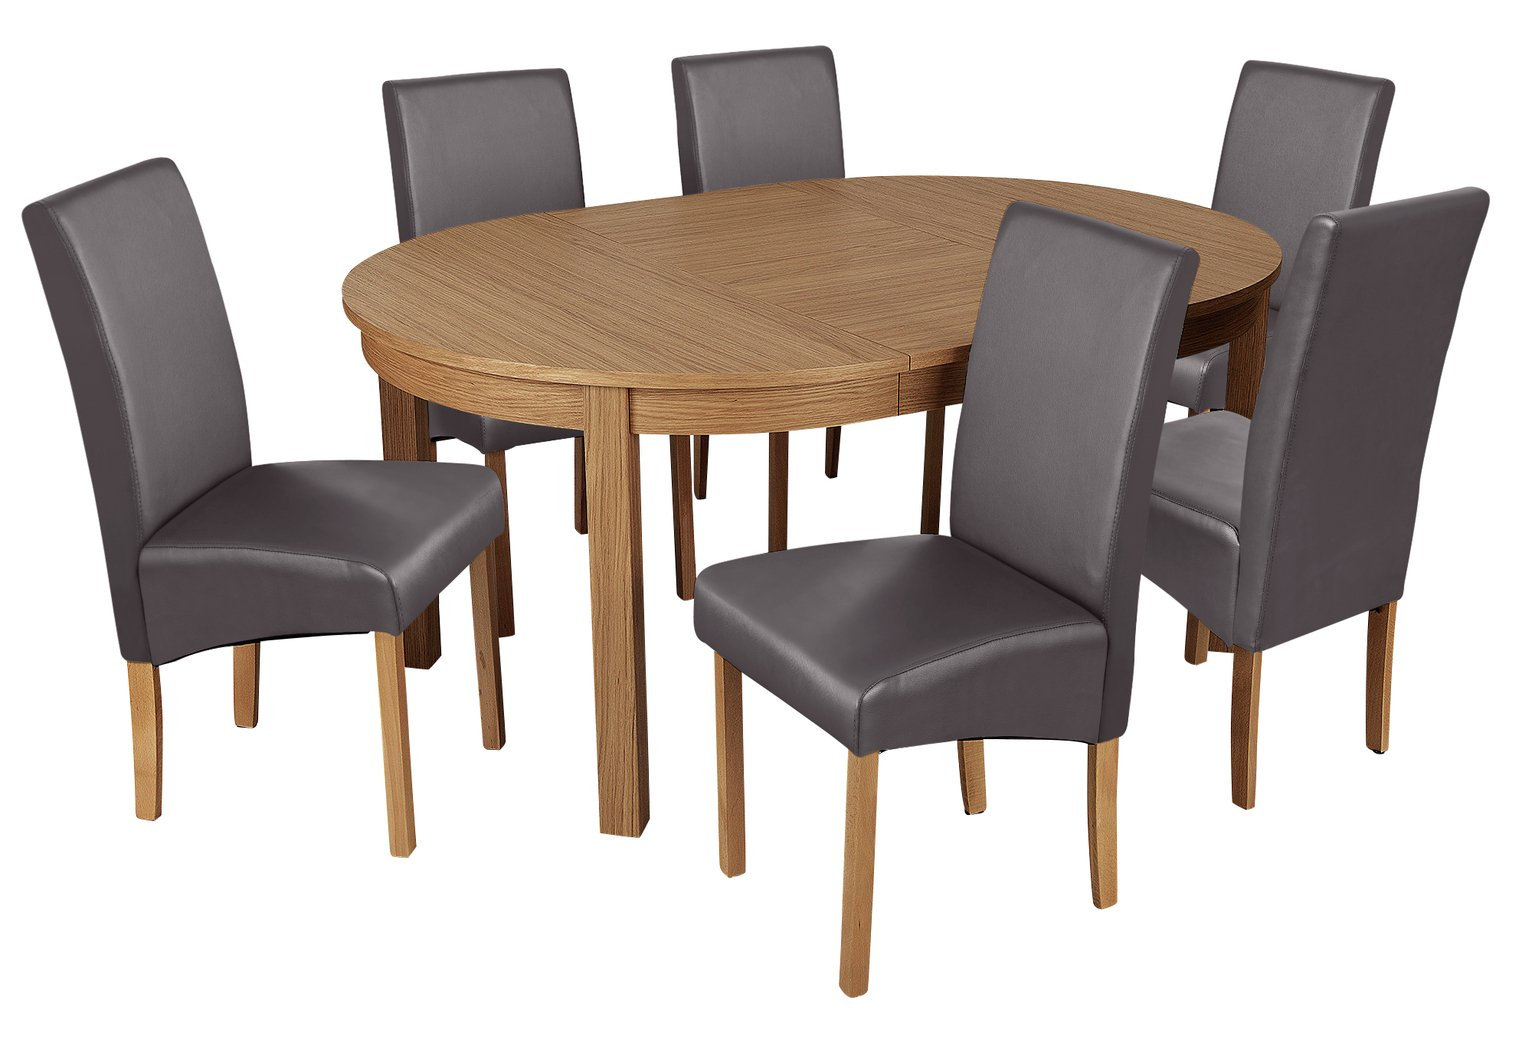 Argos Home Clifton Extendable Table & 6 Chairs - Charcoal